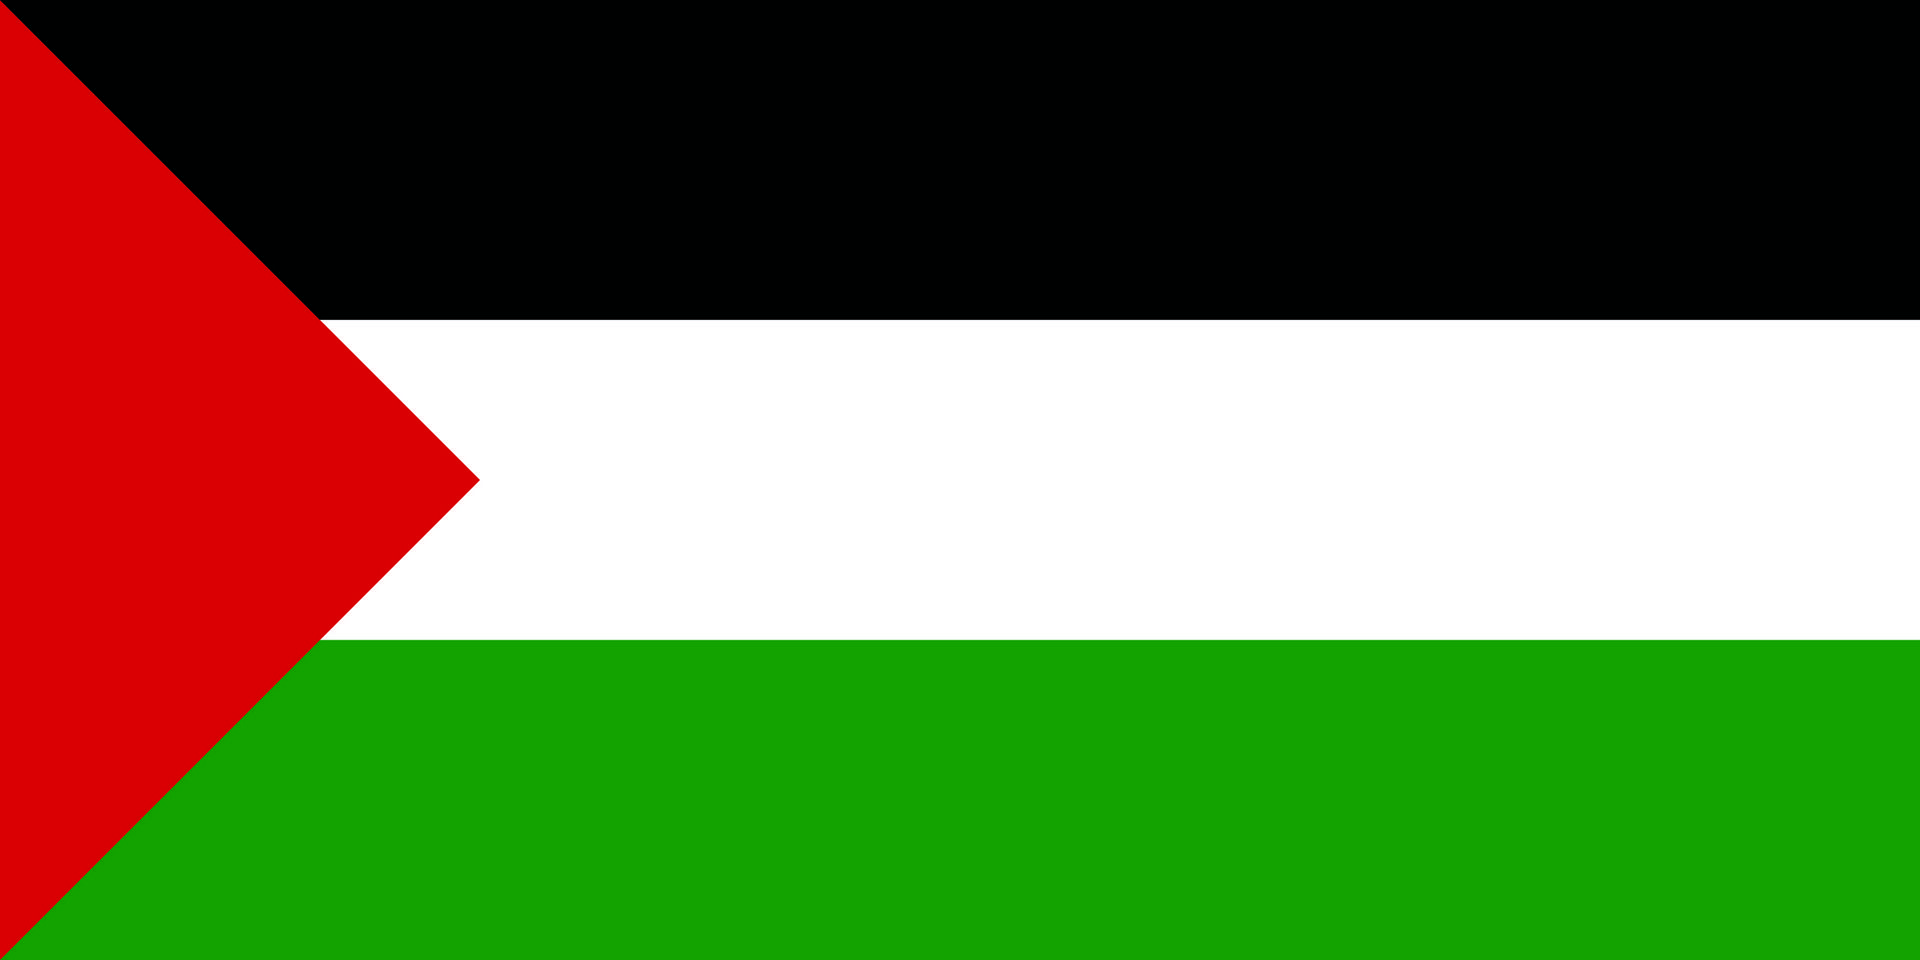 Palestine flag wallpaper flags wallpaper pinterest palestine flag palestine and flags - Palestine flag wallpaper hd ...